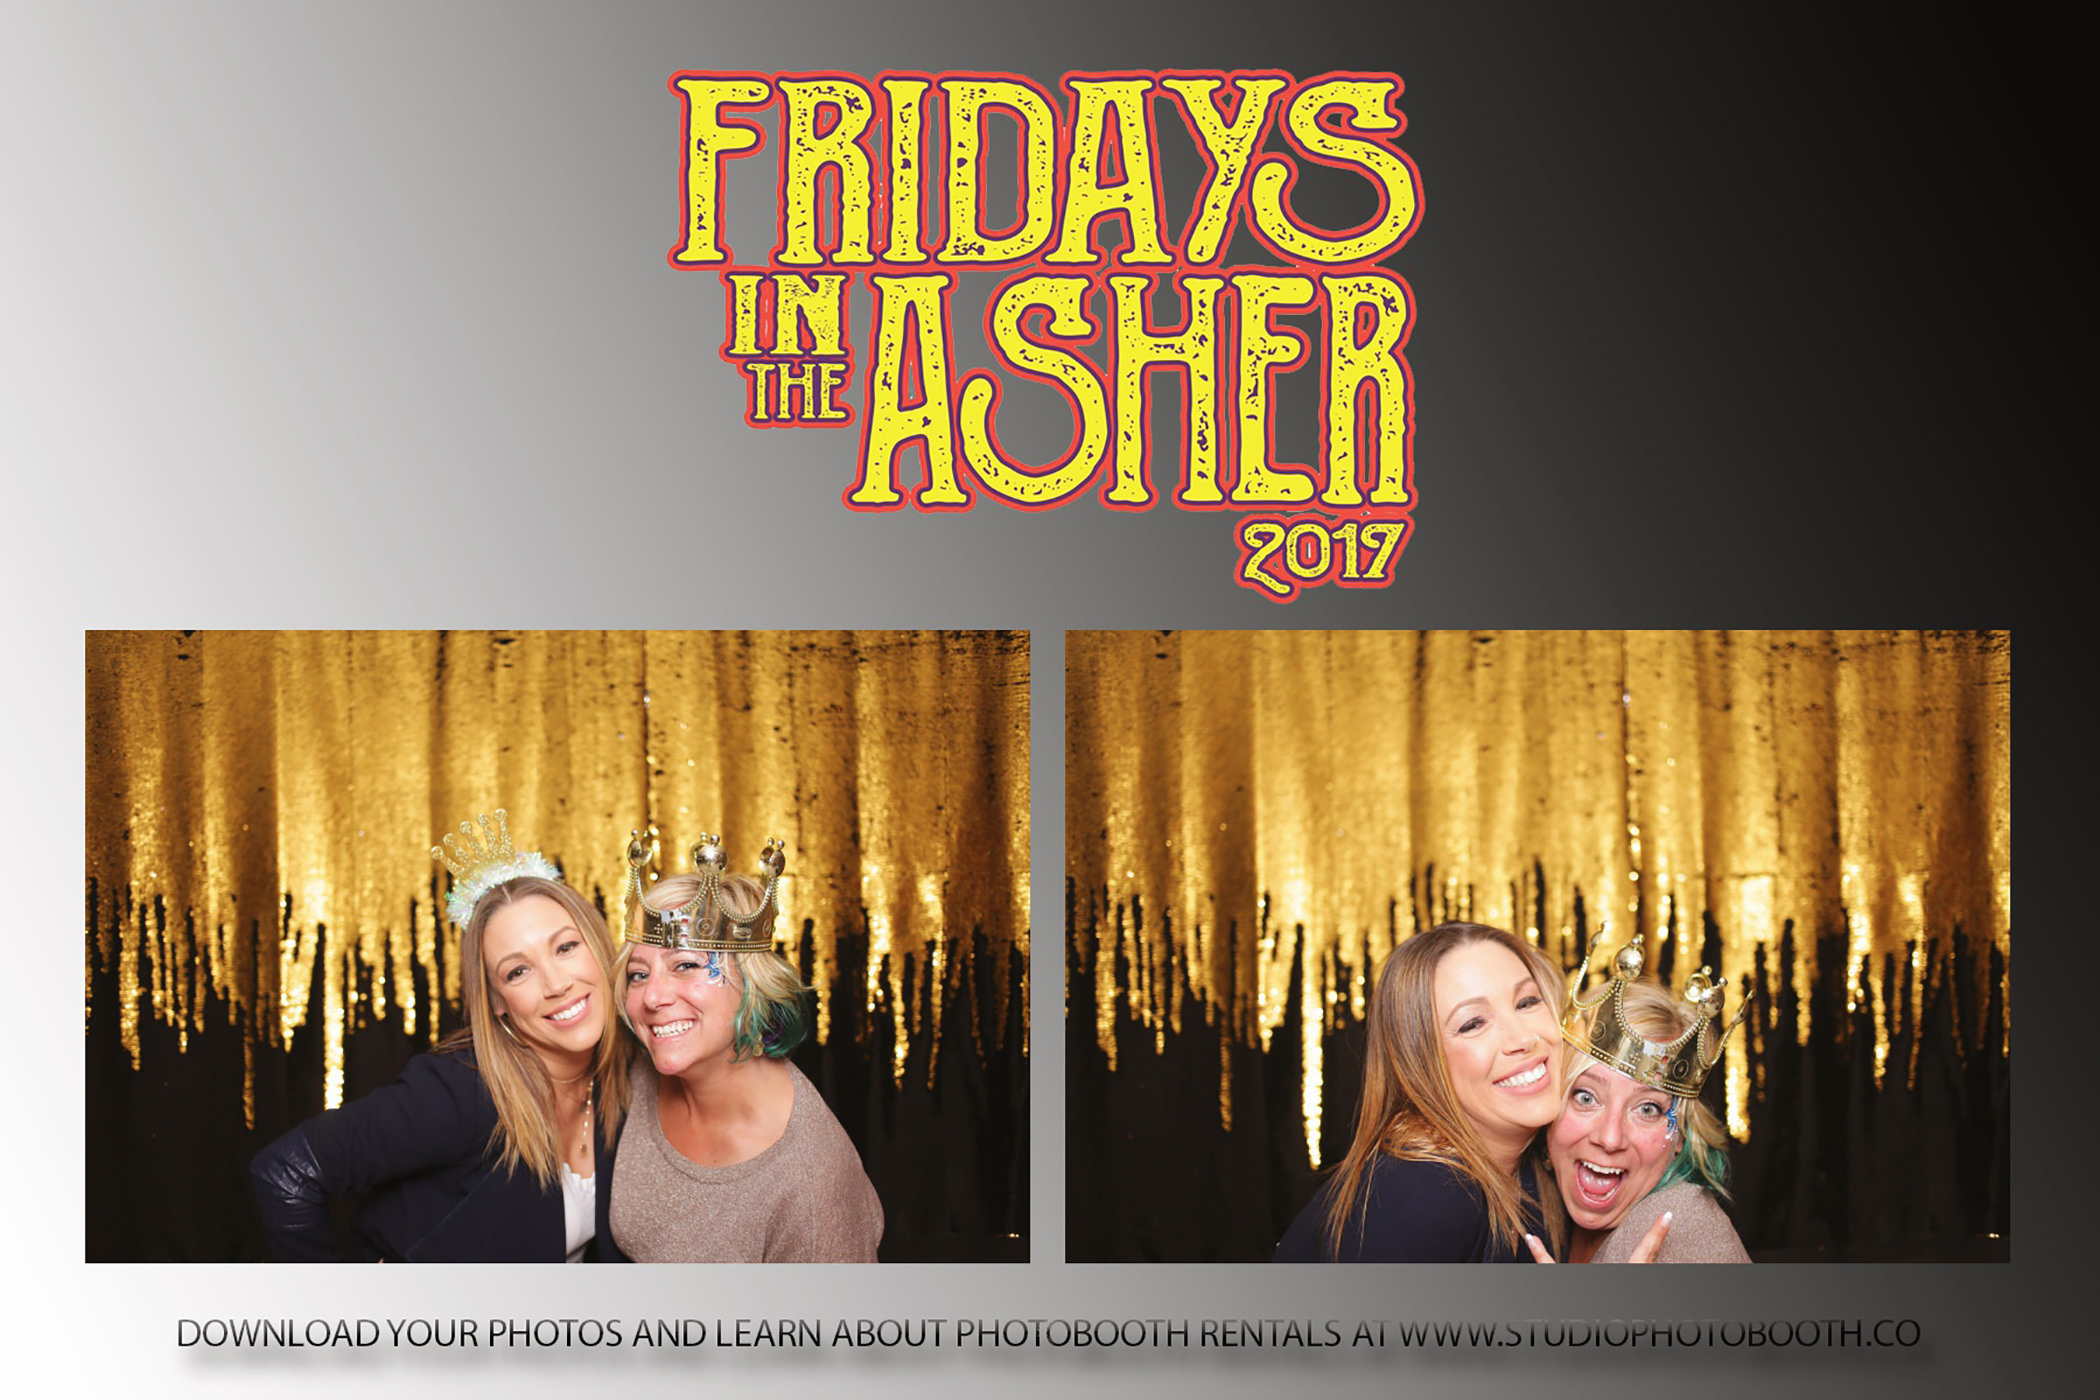 Photobooth rental Wyoming Colorado Cheyenne Liz Osban Wedding Events Party Photo Booth Cheyenne Fort Collins Denver Photography